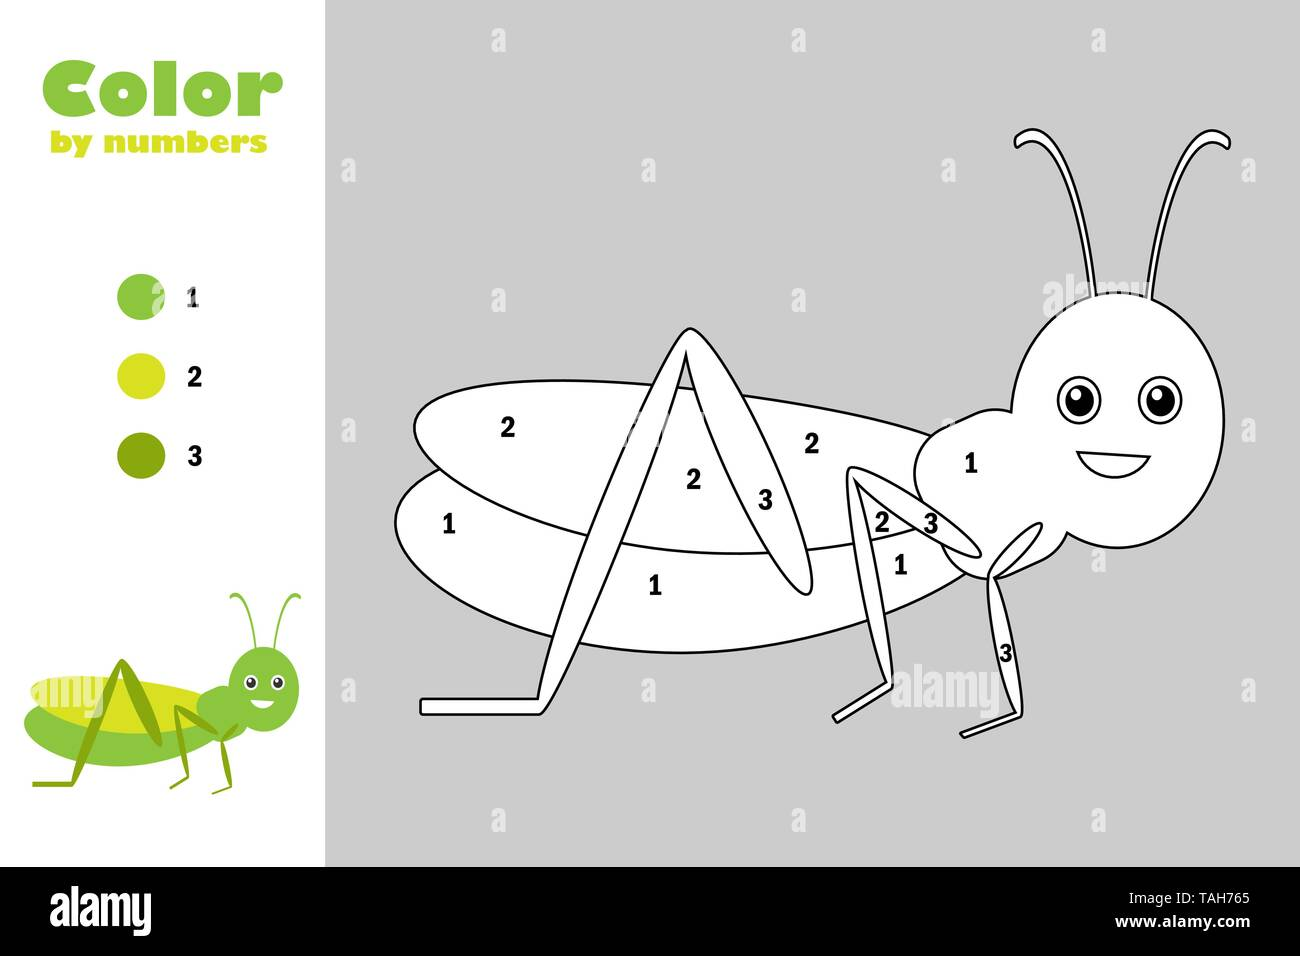 grasshopper in cartoon style color by number education paper game for the development of children coloring page kids preschool activity printable stock vector image art alamy https www alamy com grasshopper in cartoon style color by number education paper game for the development of children coloring page kids preschool activity printable image247470557 html